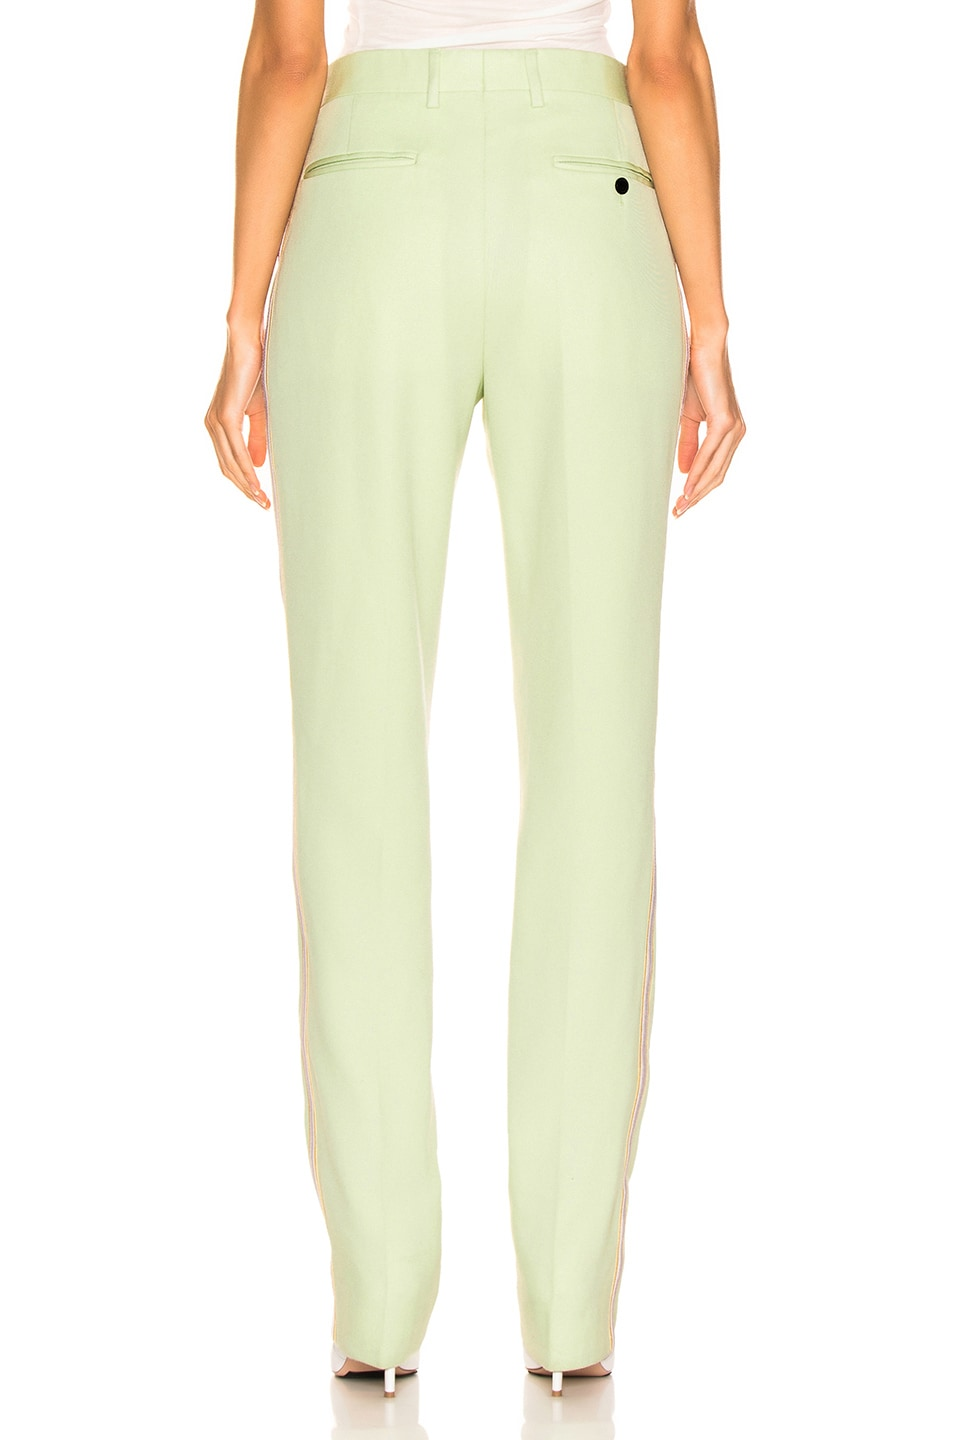 Image 4 of CALVIN KLEIN 205W39NYC Wool Twill Uniform Pant in Arcadian Green & Burgundy & Ecru